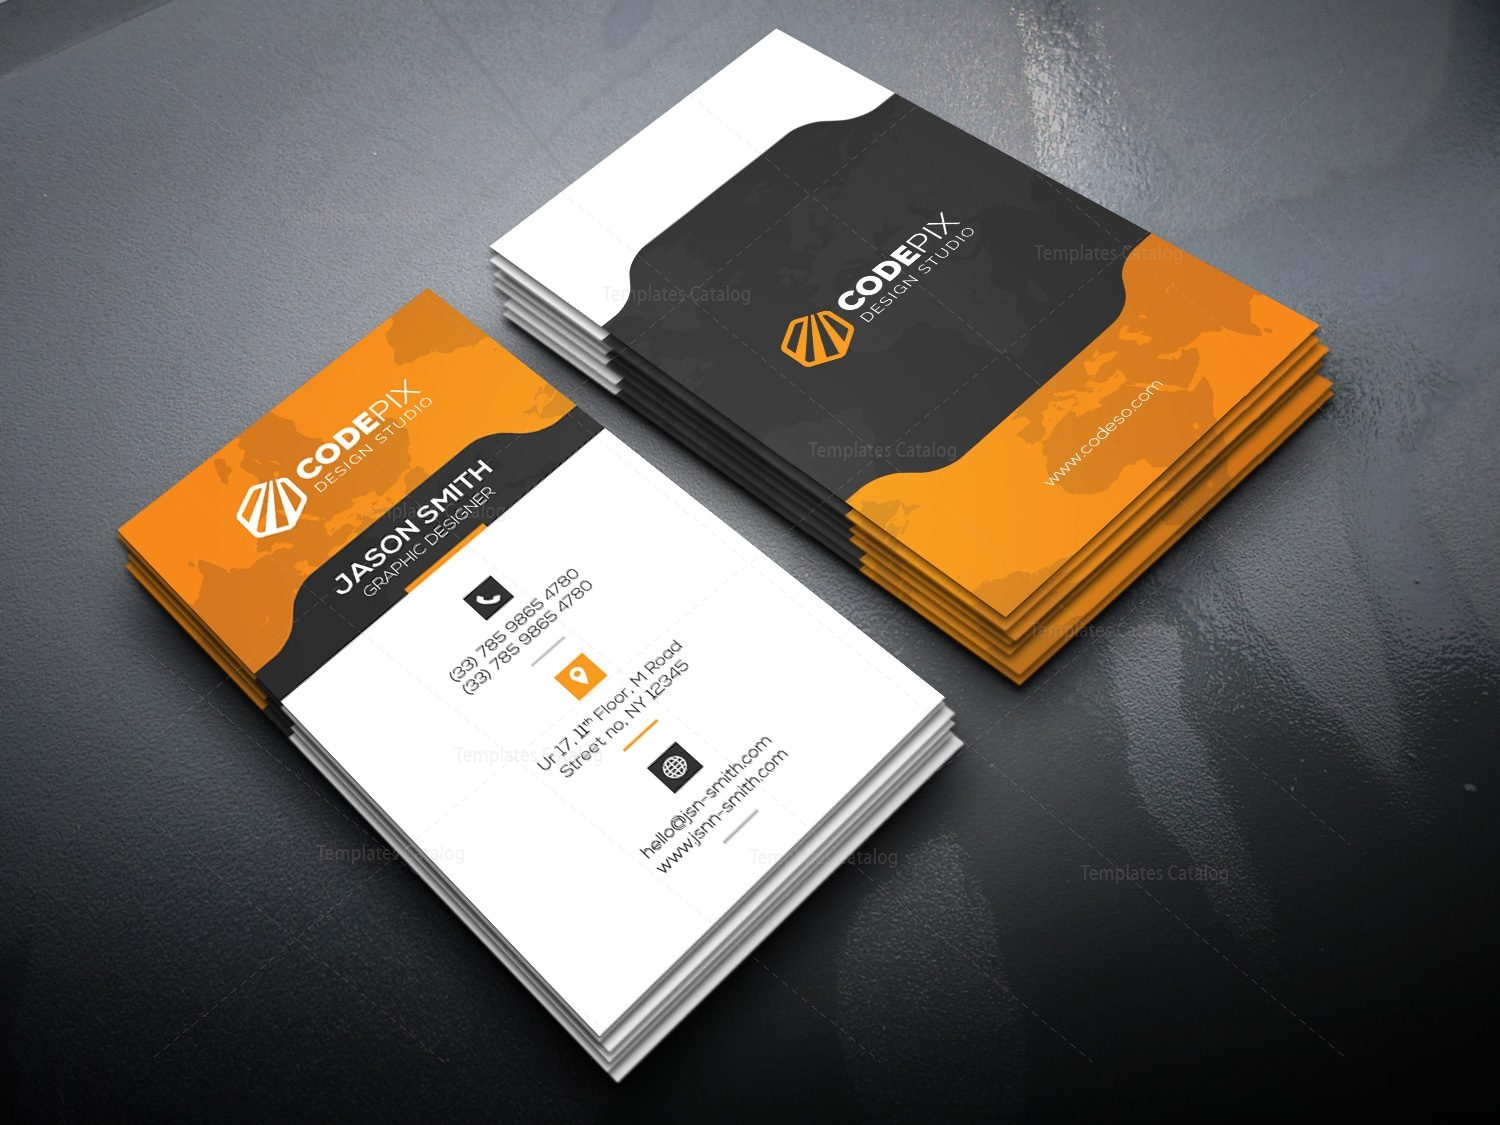 Vertical Business Card with Stylish Design 000521 - Template Catalog